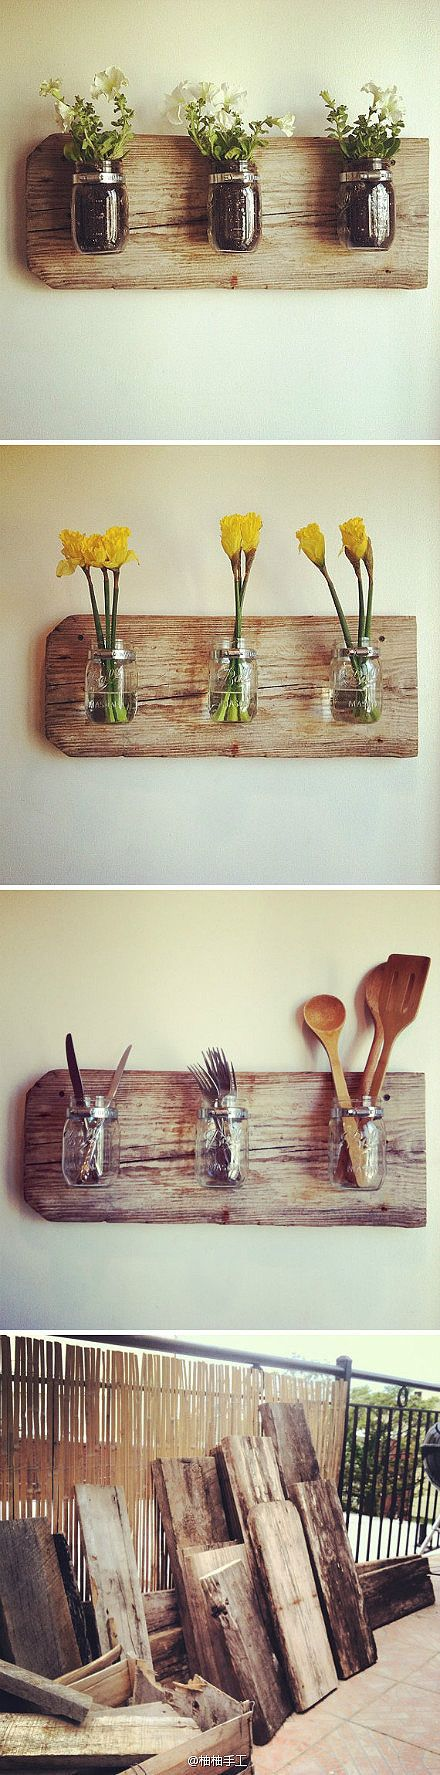 DIY utensil holder